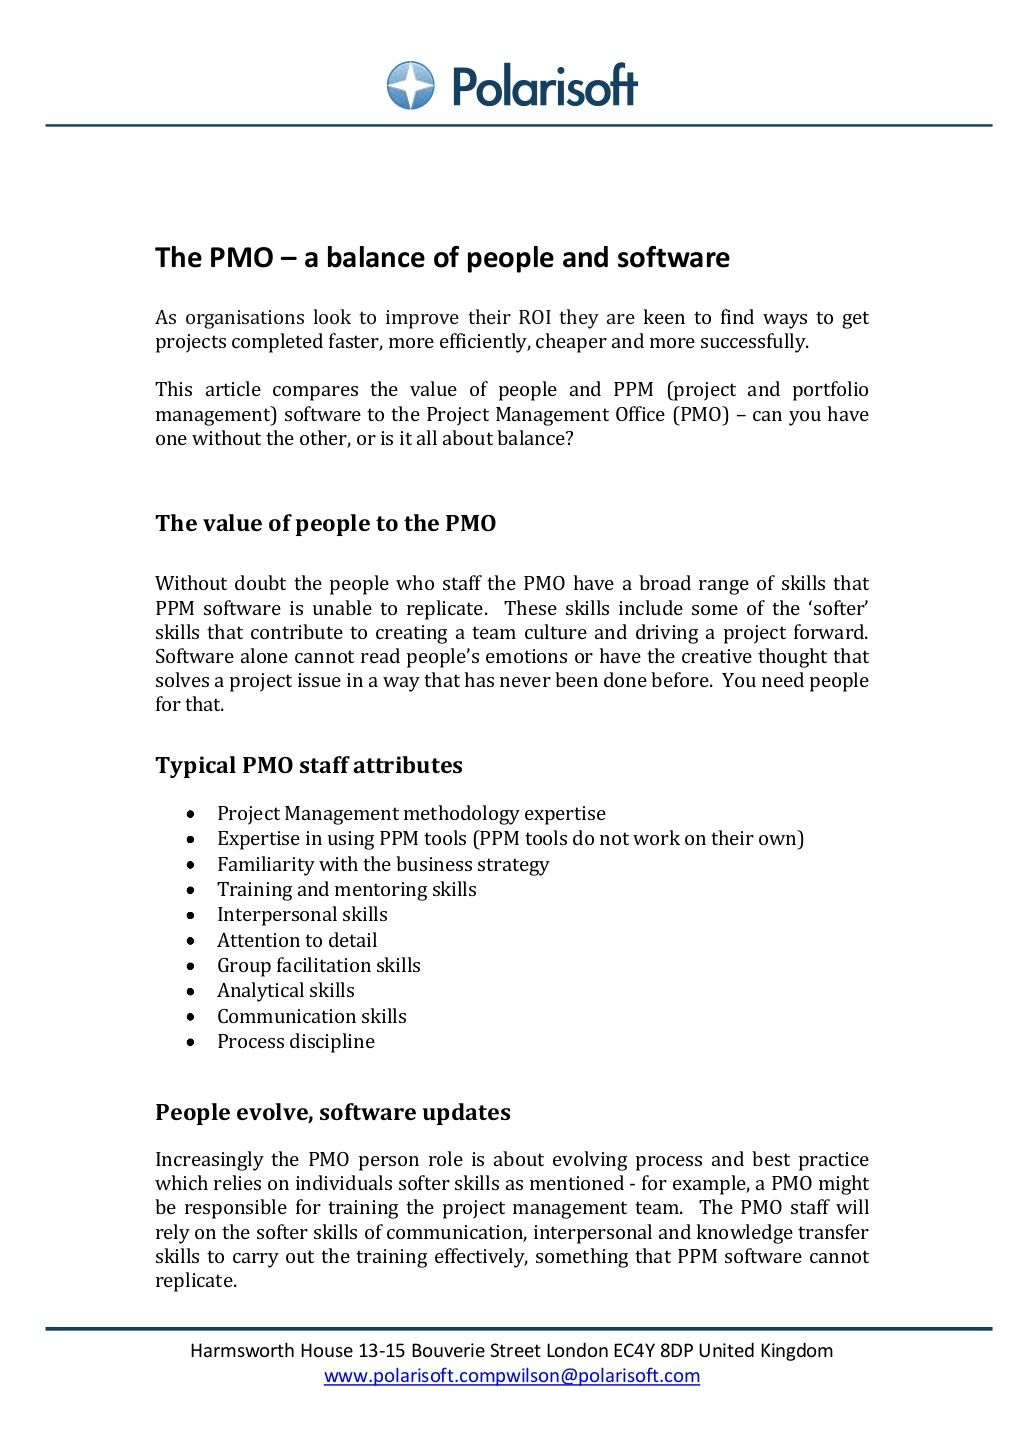 PMO balancing people and software by Polarisoft via